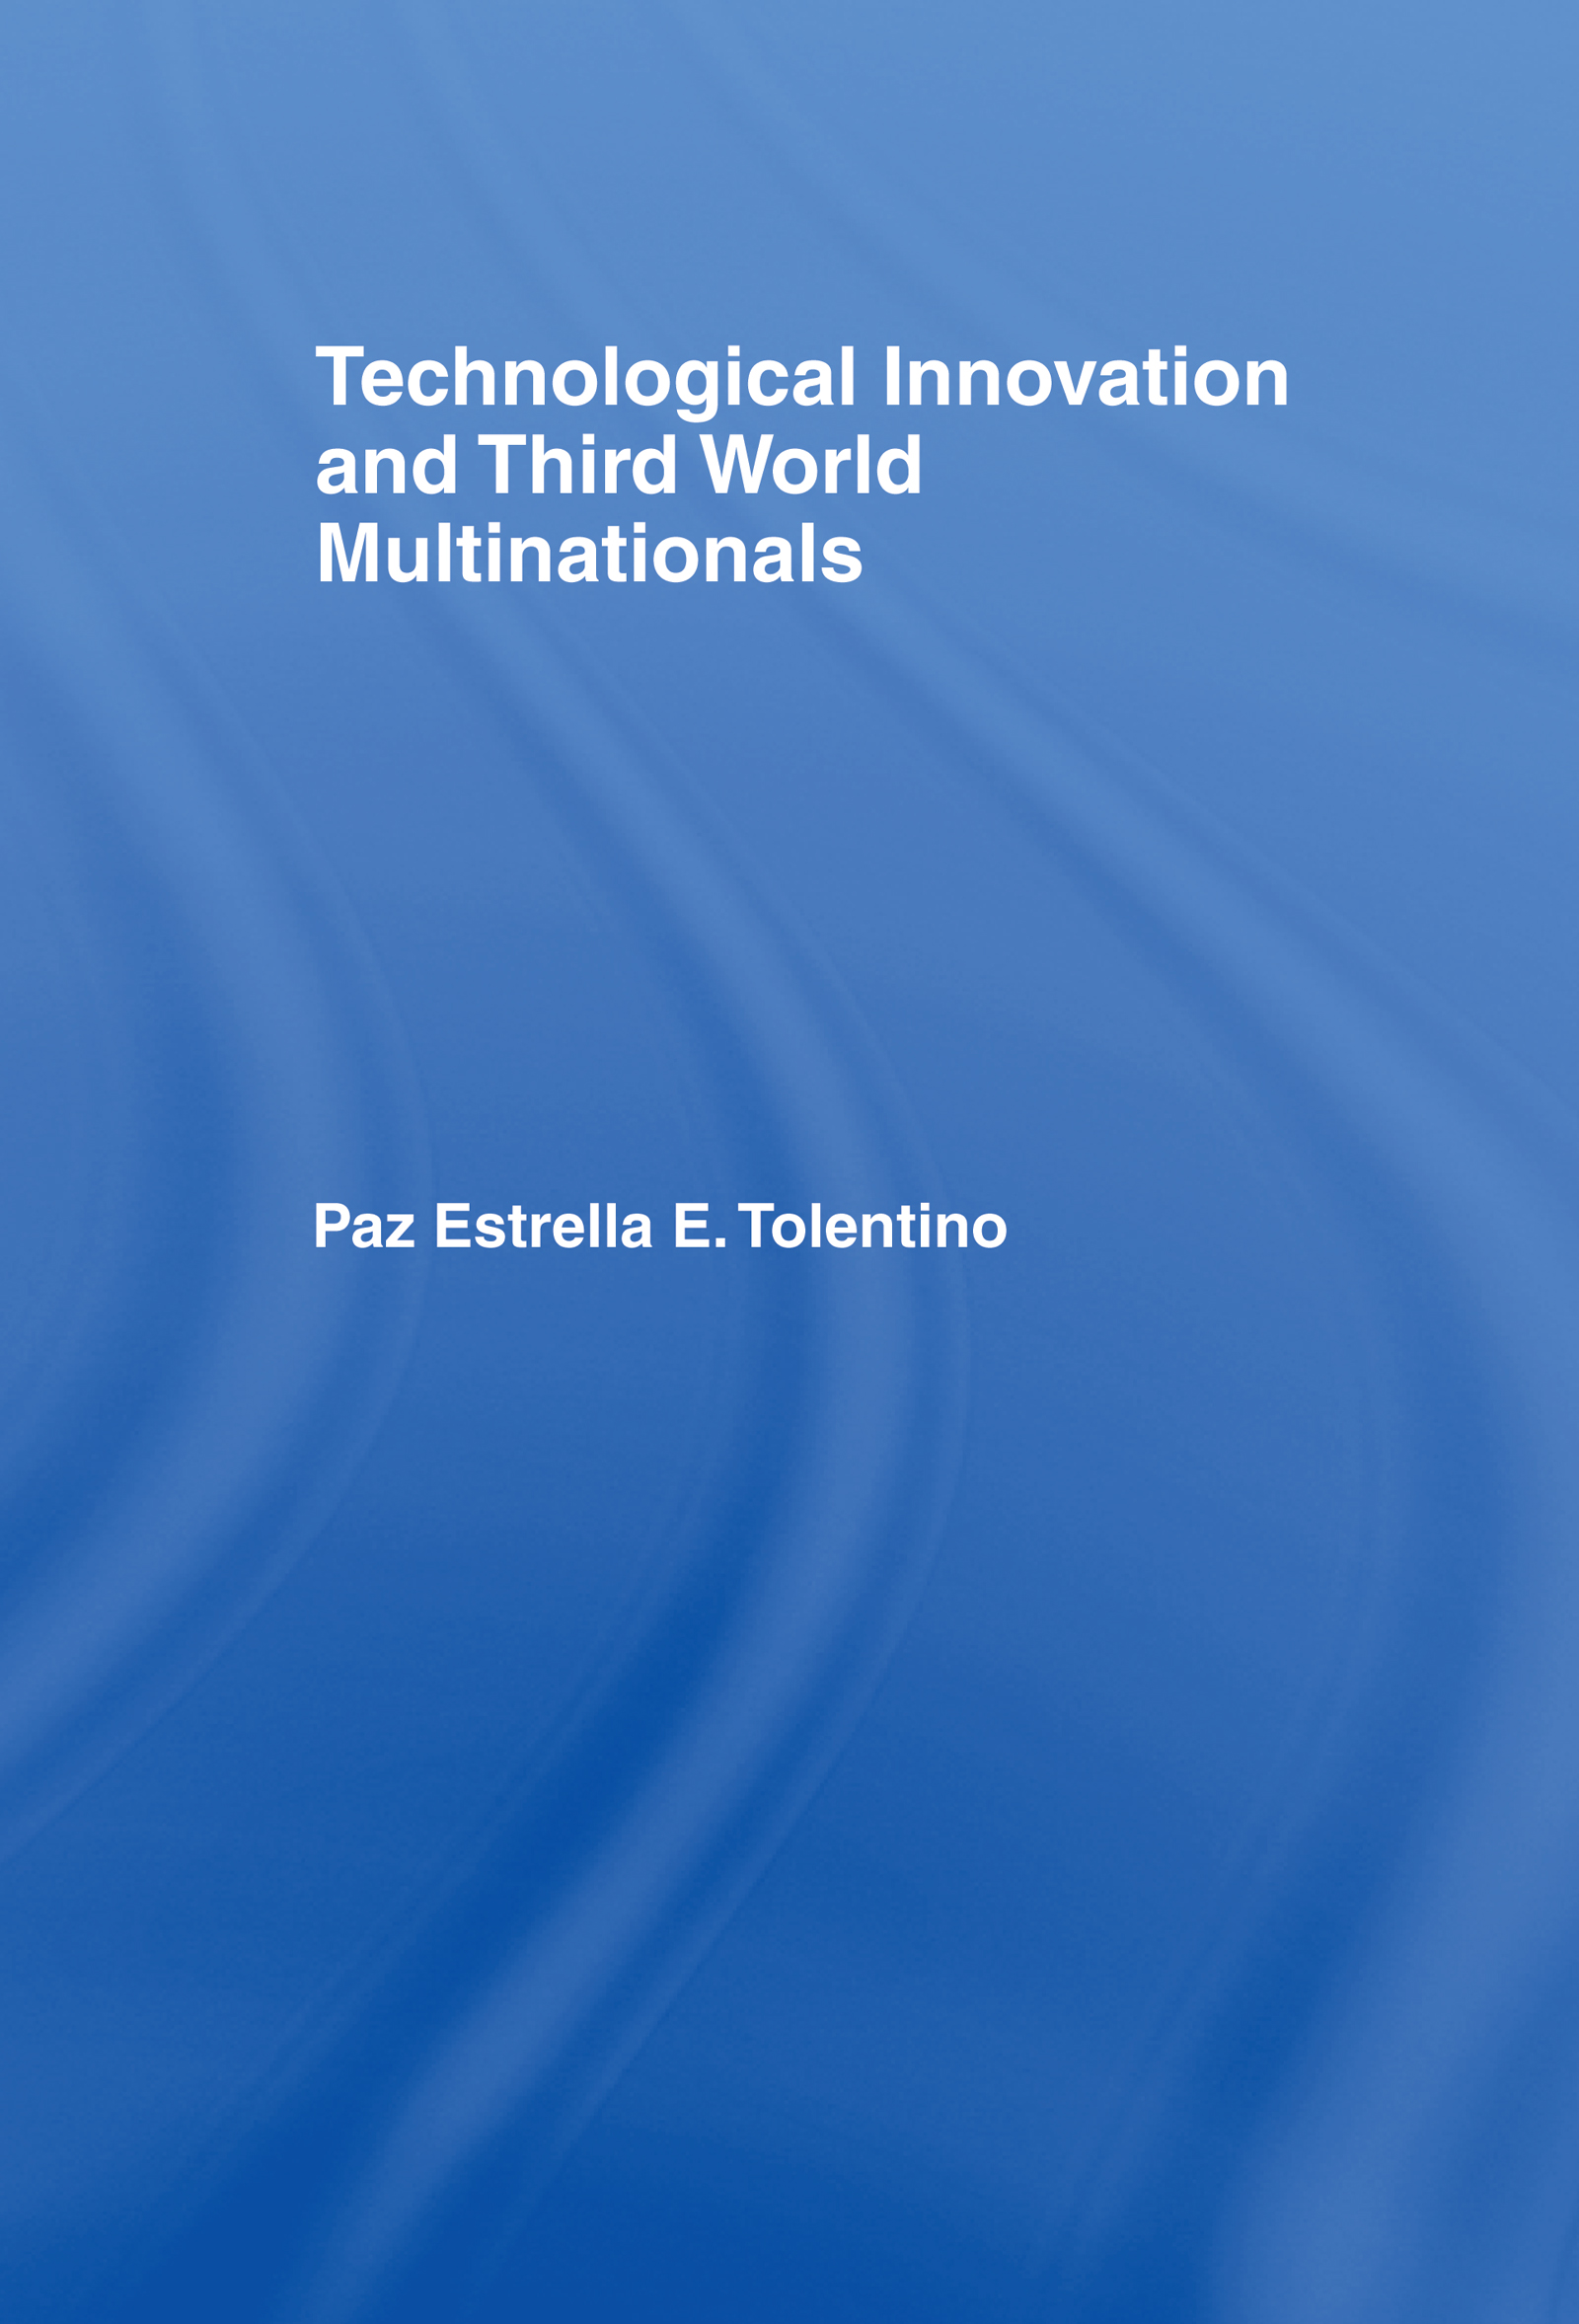 Technological Innovation and Third World Multinationals